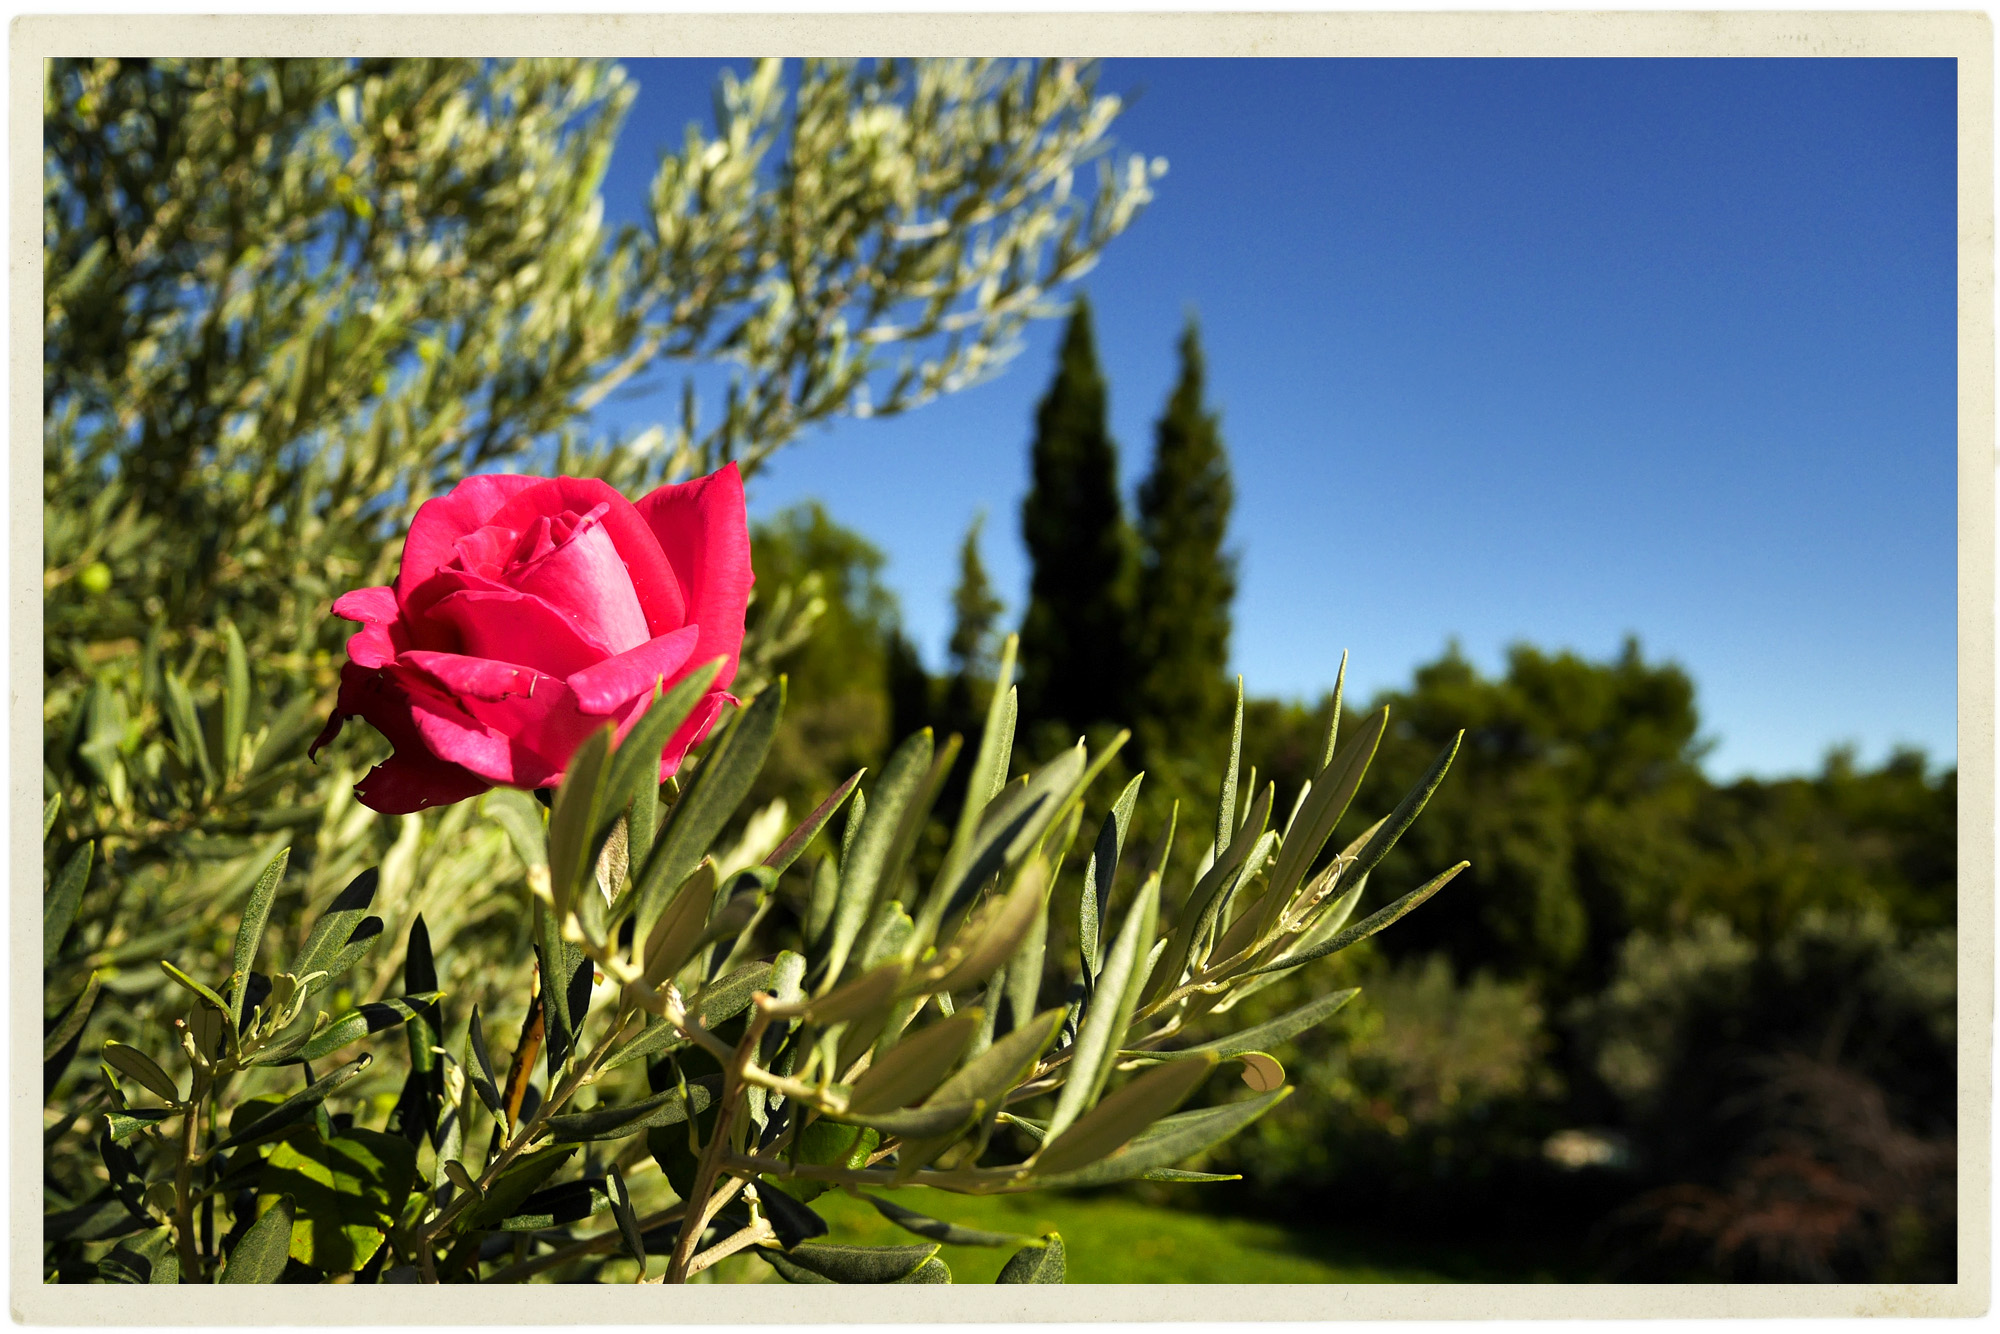 One lone rose amidst the olives.